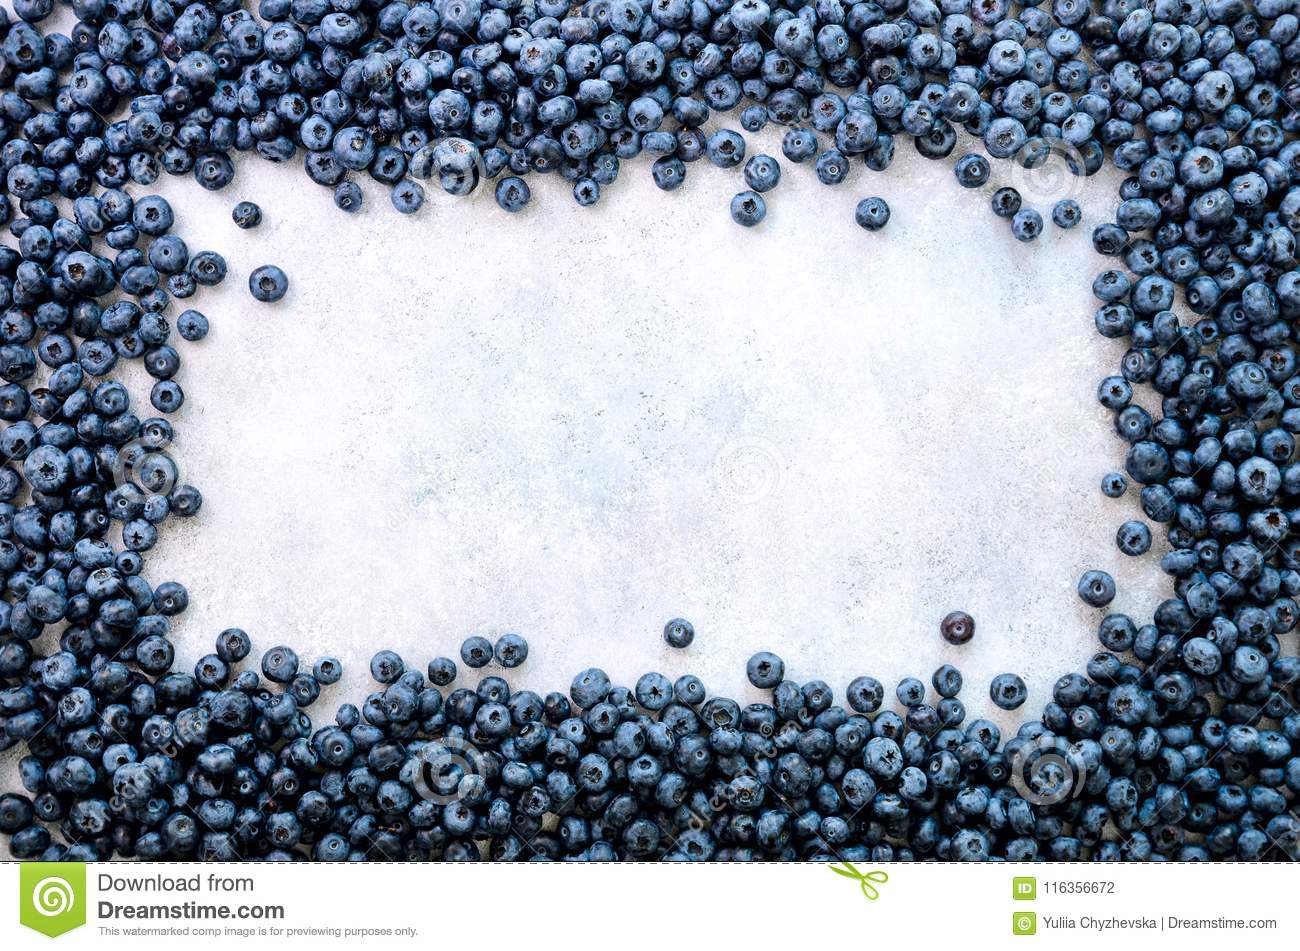 Summer berries background. Top view. Food frame with assorted mix of strawberry, blueberry. Vitamin, vegan, vegetarian